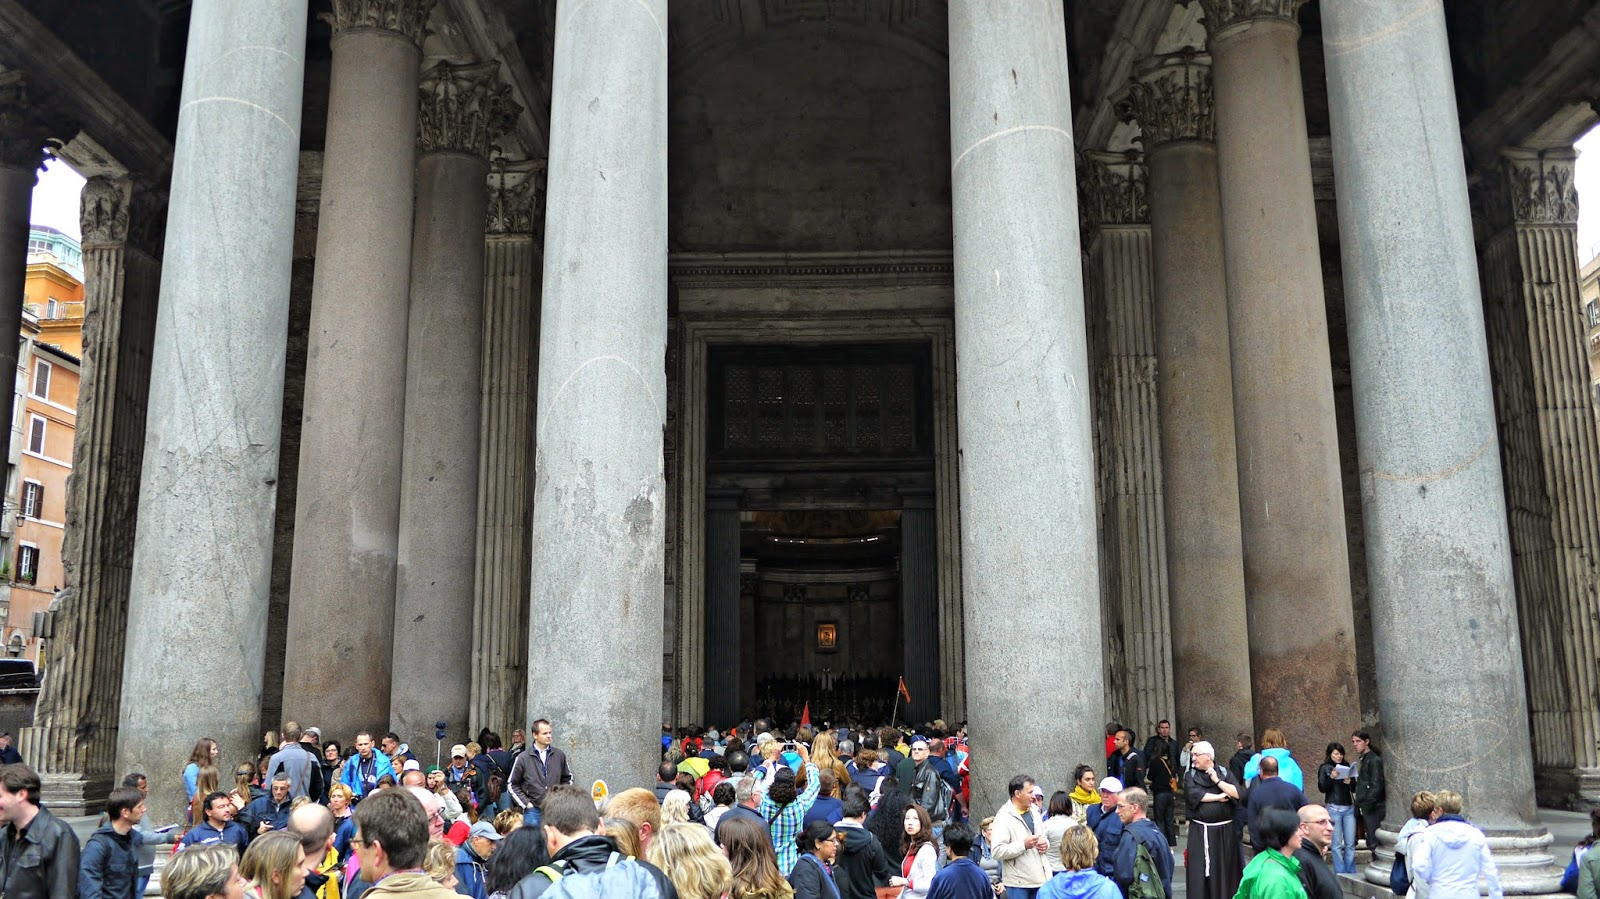 Crowds at The Pantheon in Rome Italy